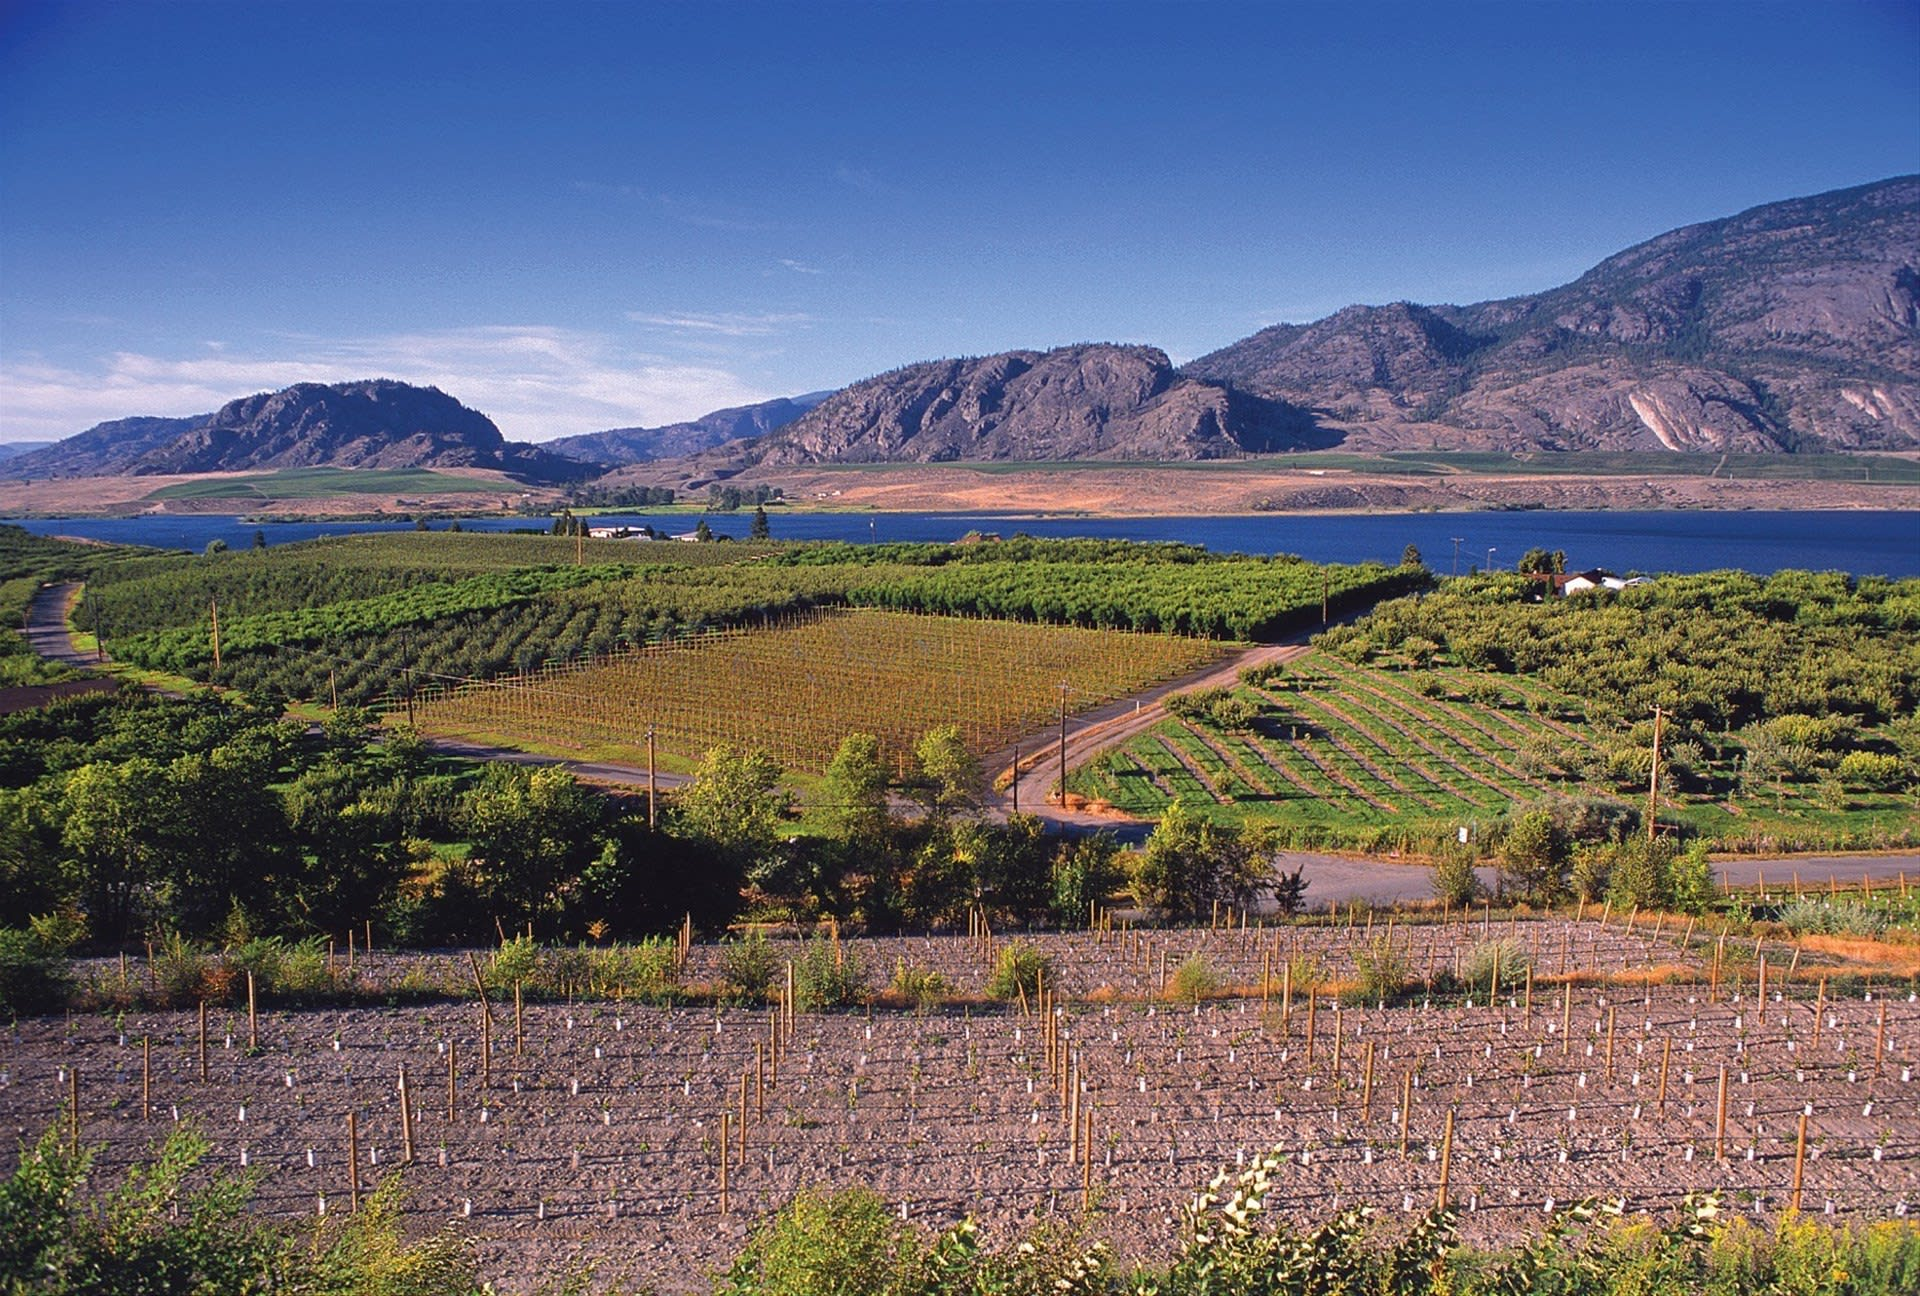 British Columbia: Mountains, Wineries & Ranches